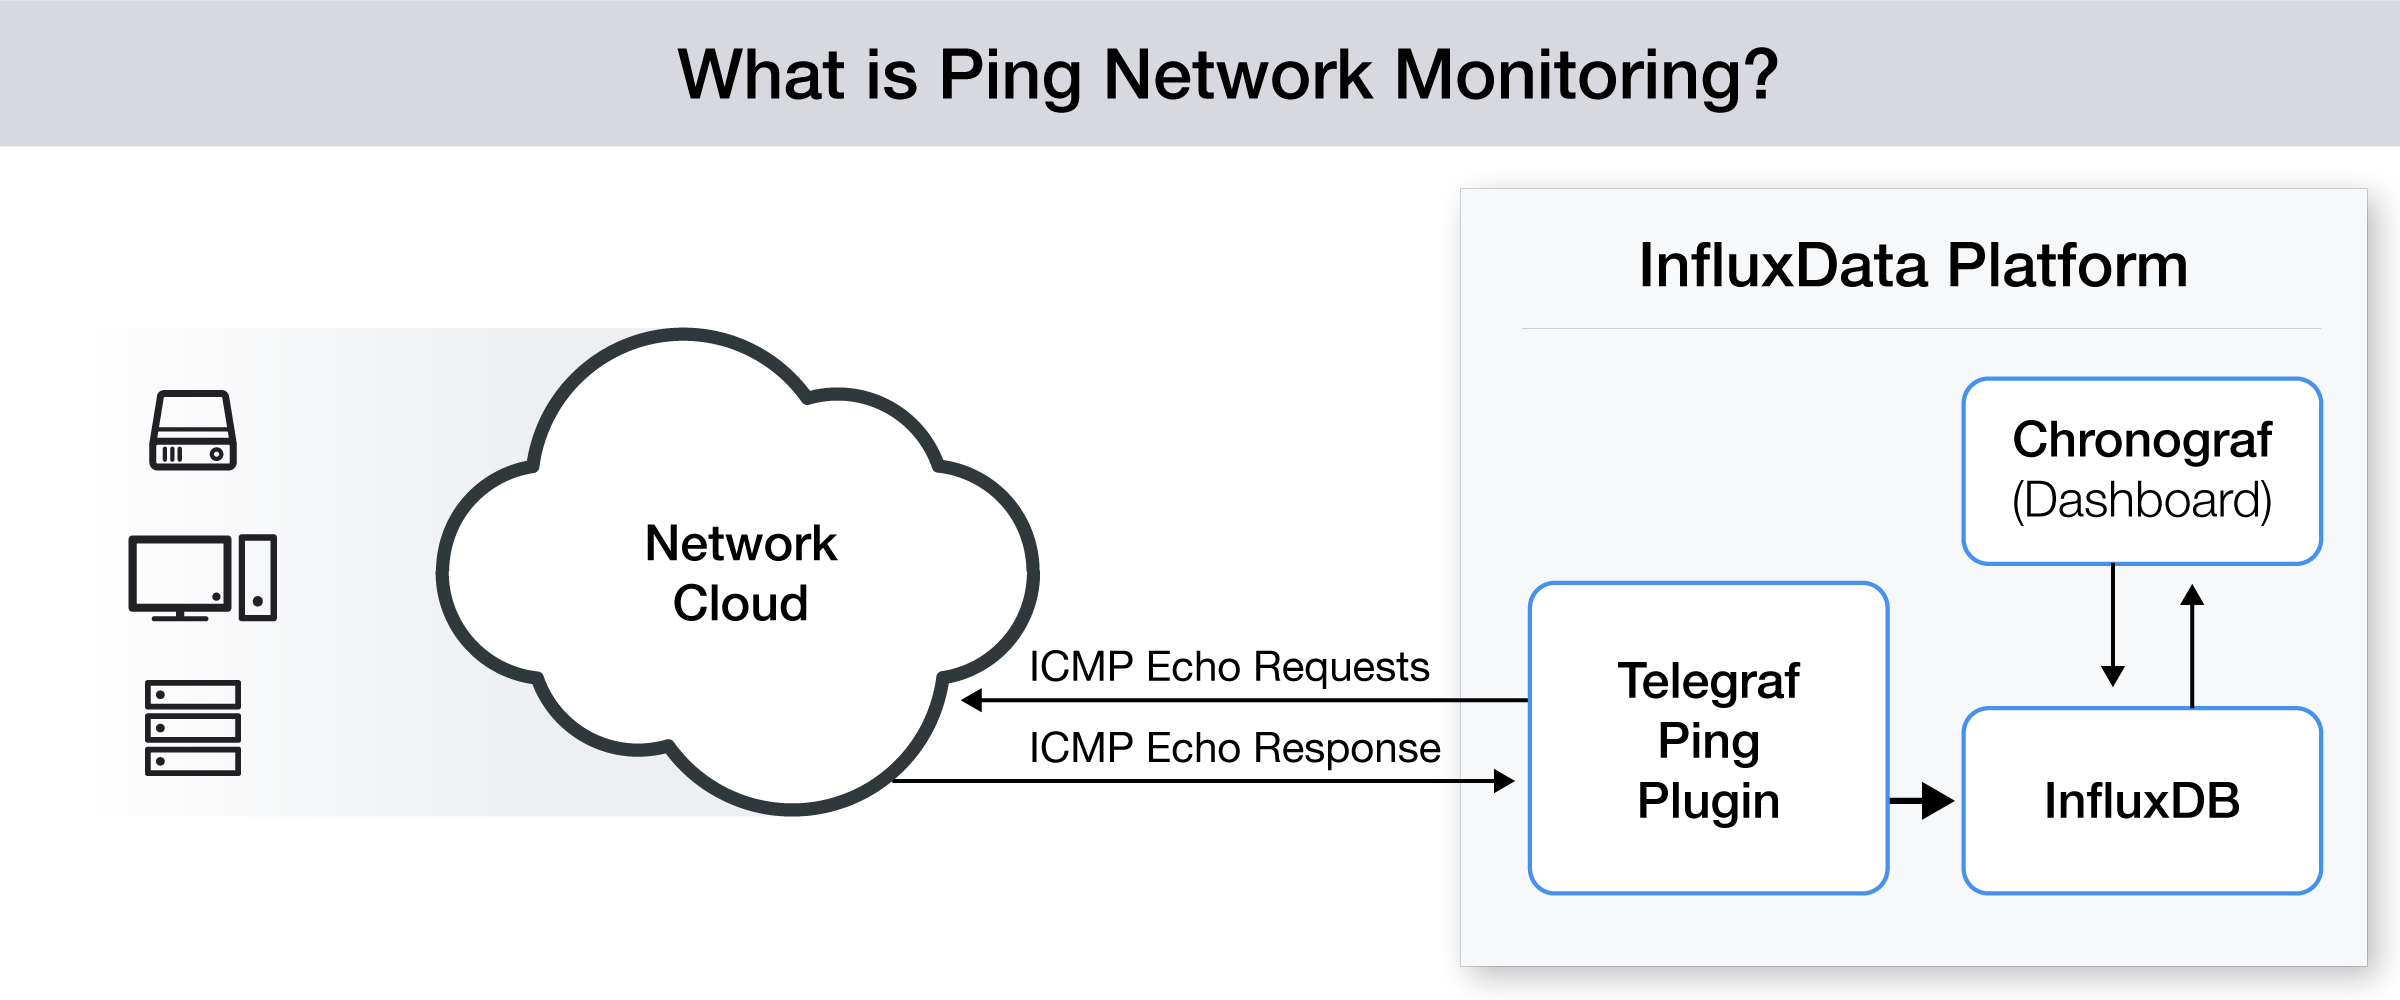 Ping network monitoring with InfluxDB and Telegraf